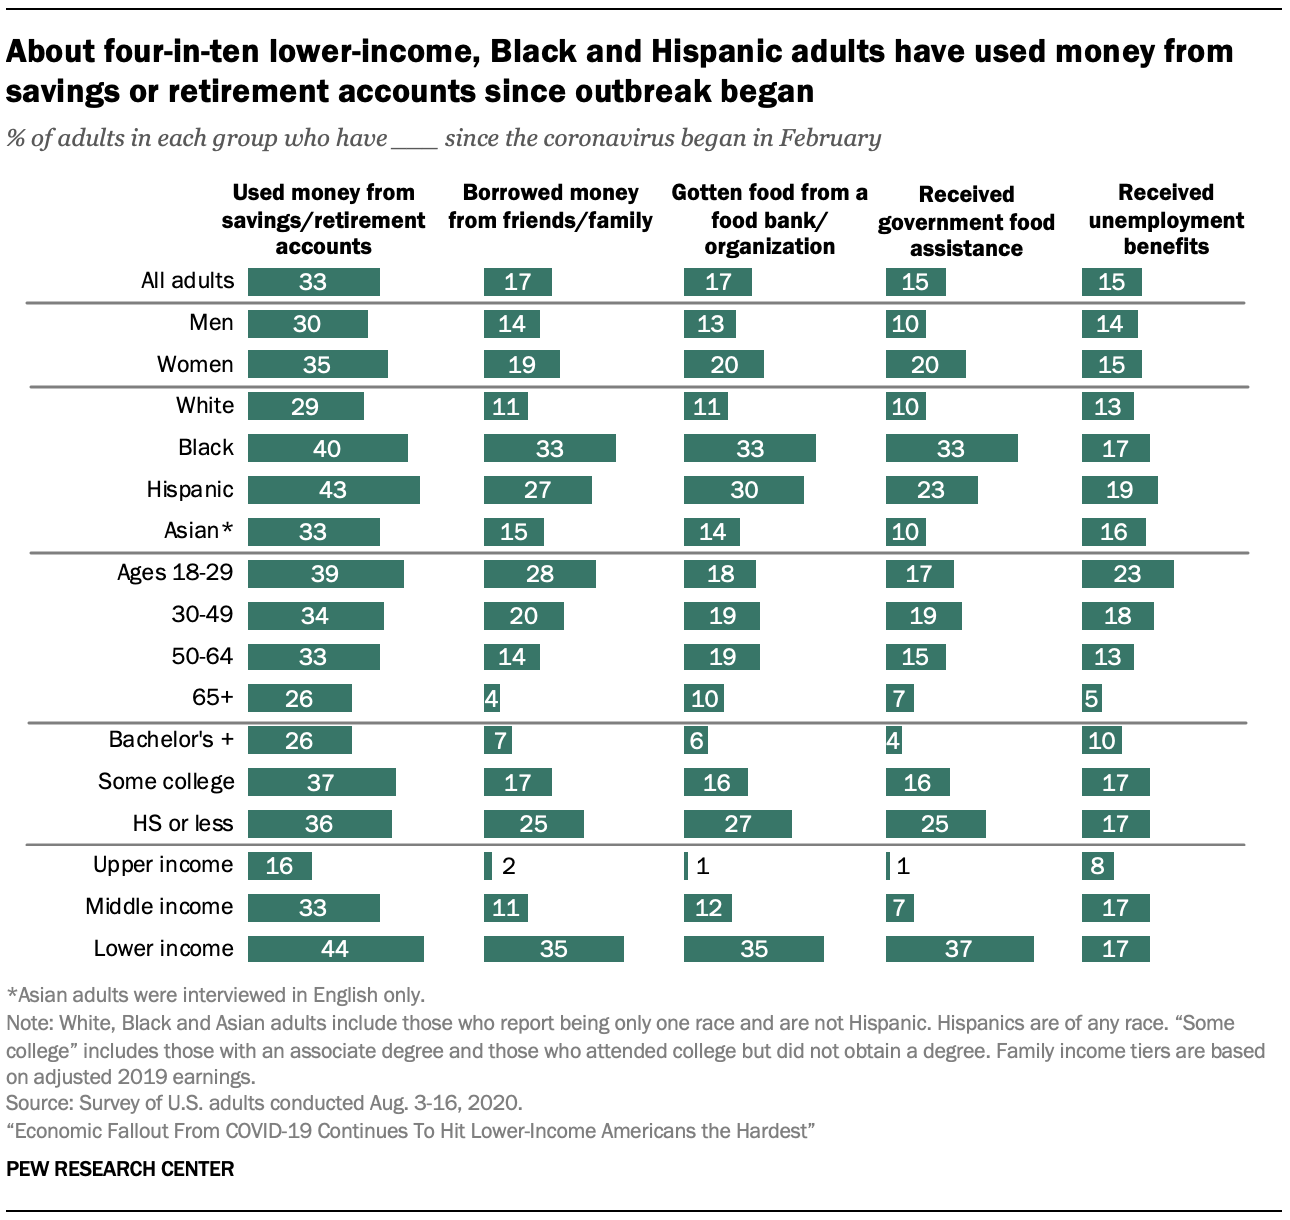 About four-in-ten lower-income, Black and Hispanic adults have used money from savings or retirement accounts since outbreak began